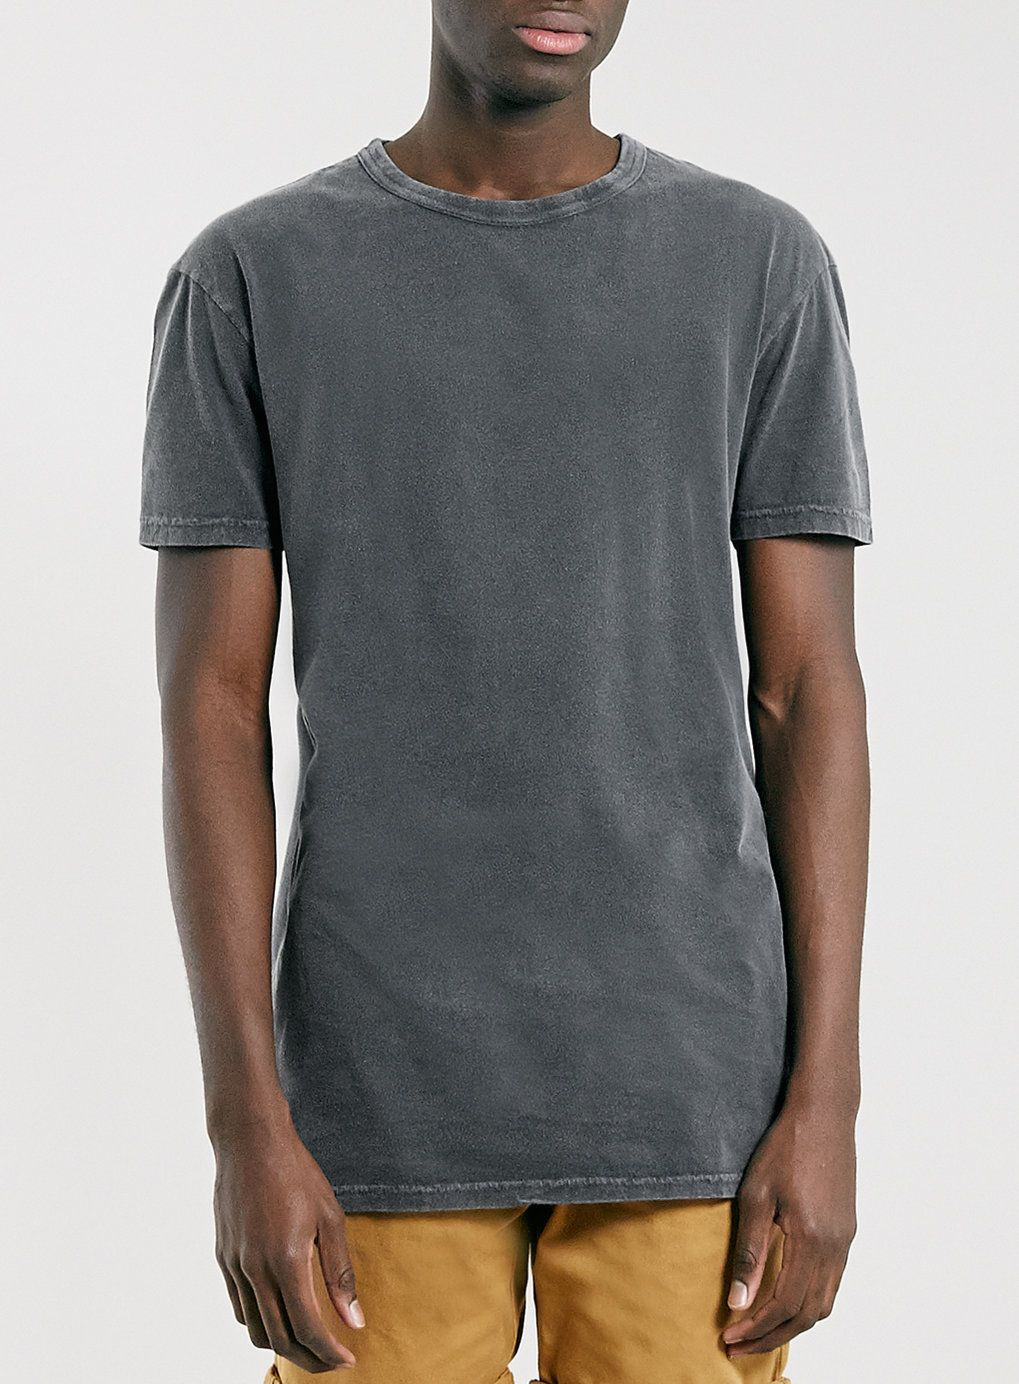 BLACK WASHED LONGLINE T-SHIRT - Men's T-shirts & Tanks - Clothing ...